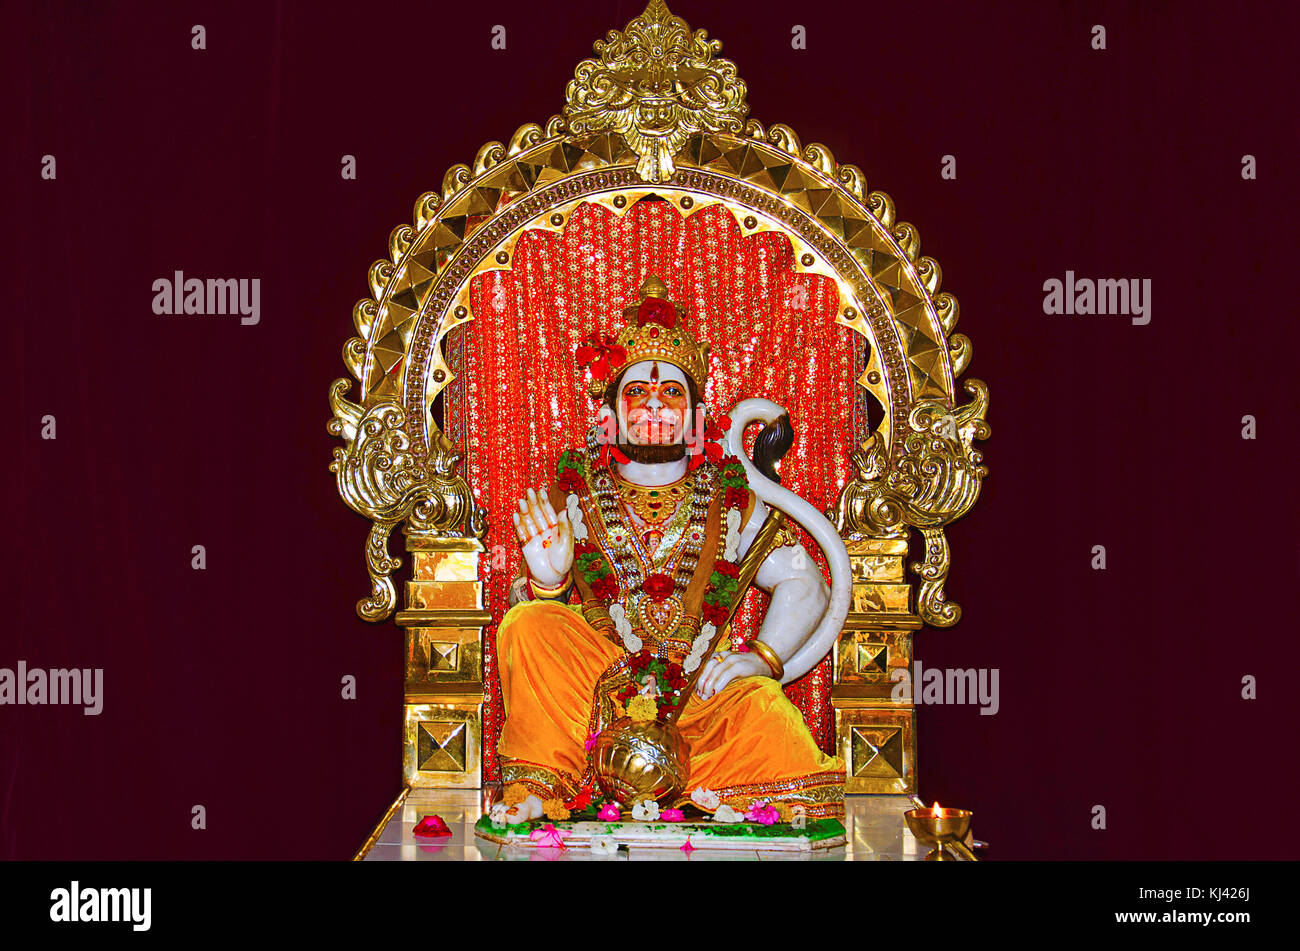 The idol of Lord Hanuman - Maruti  Made of white marble